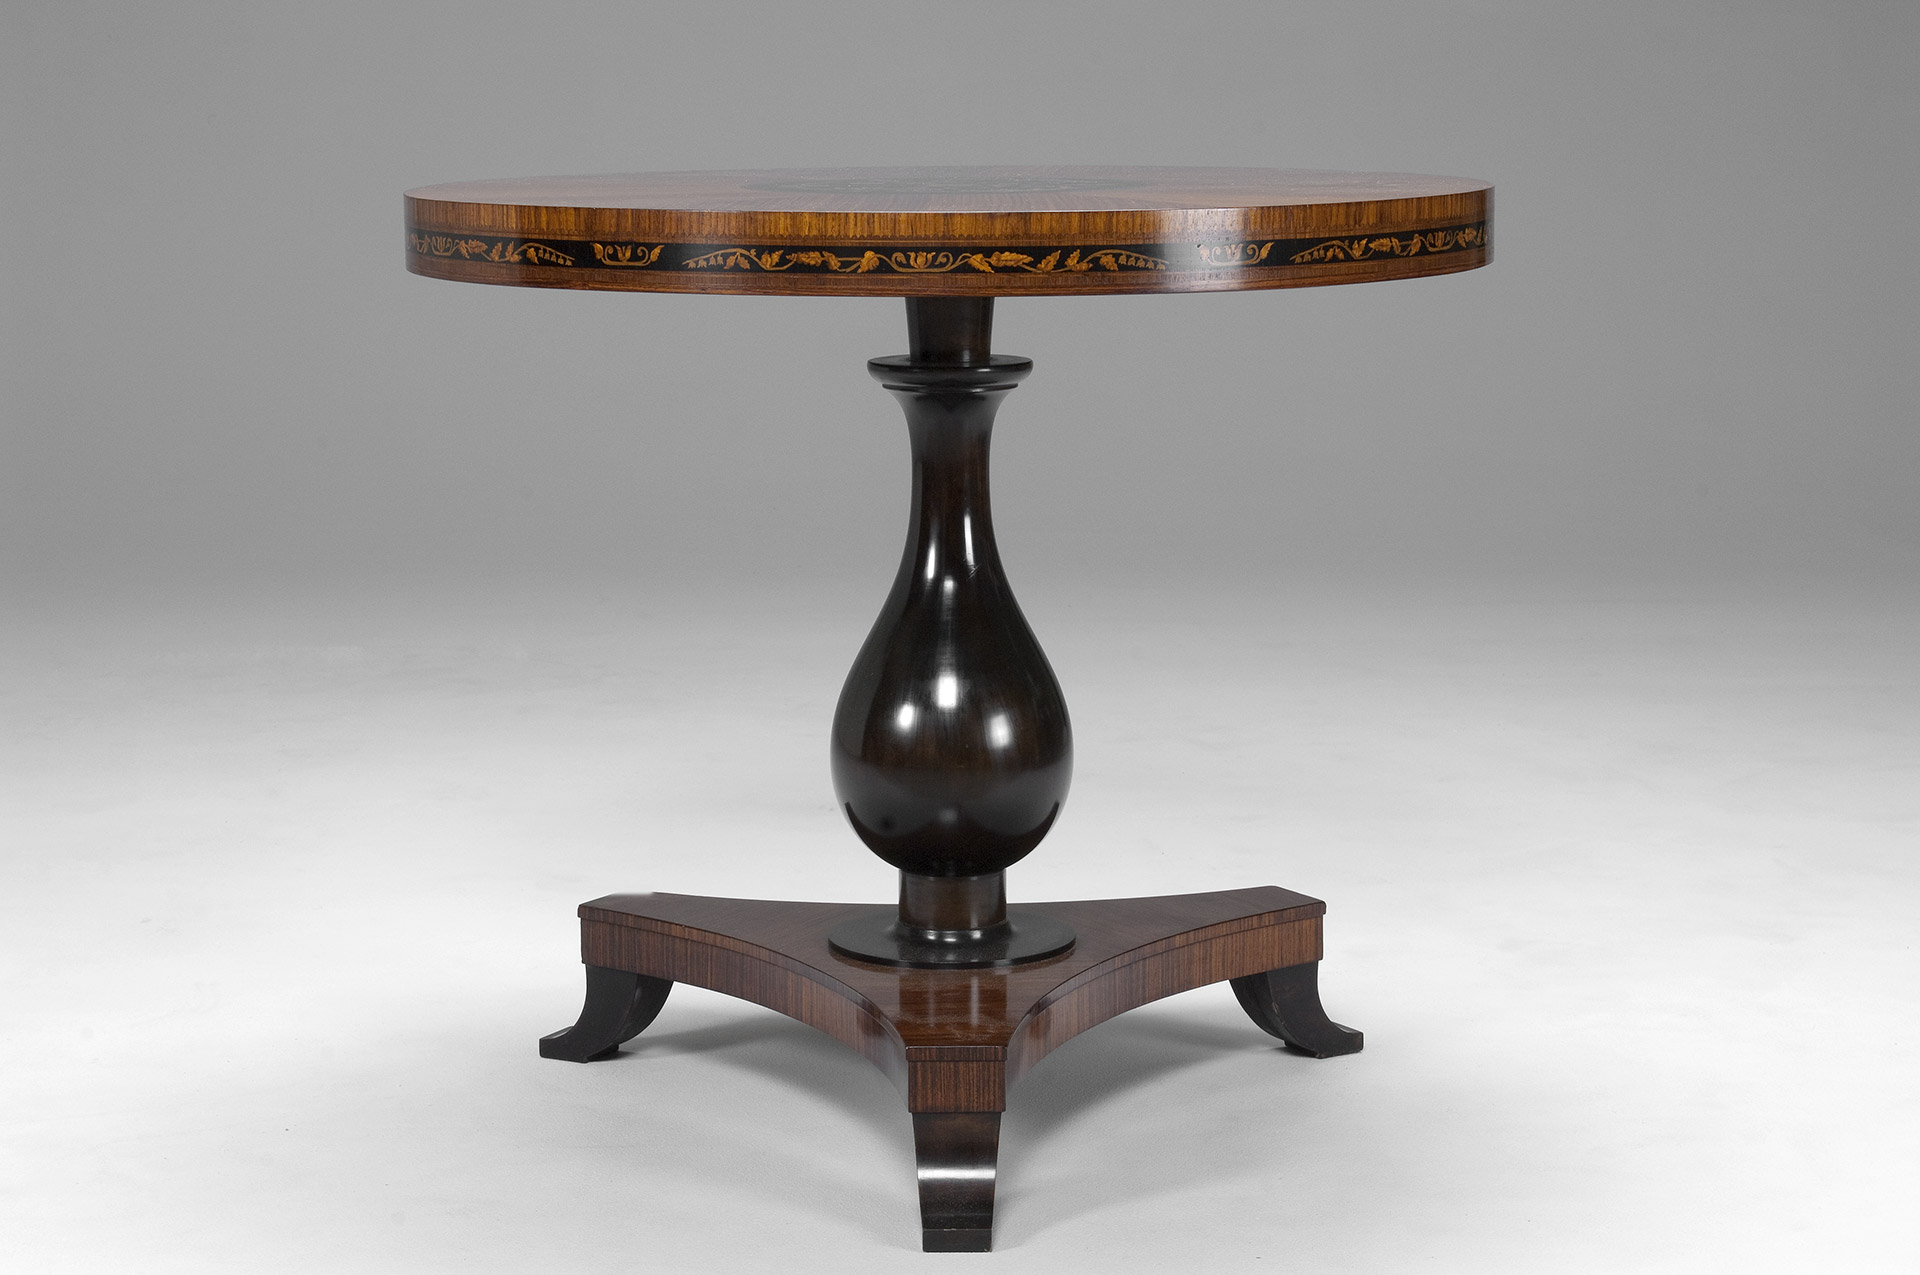 Malmsten Table